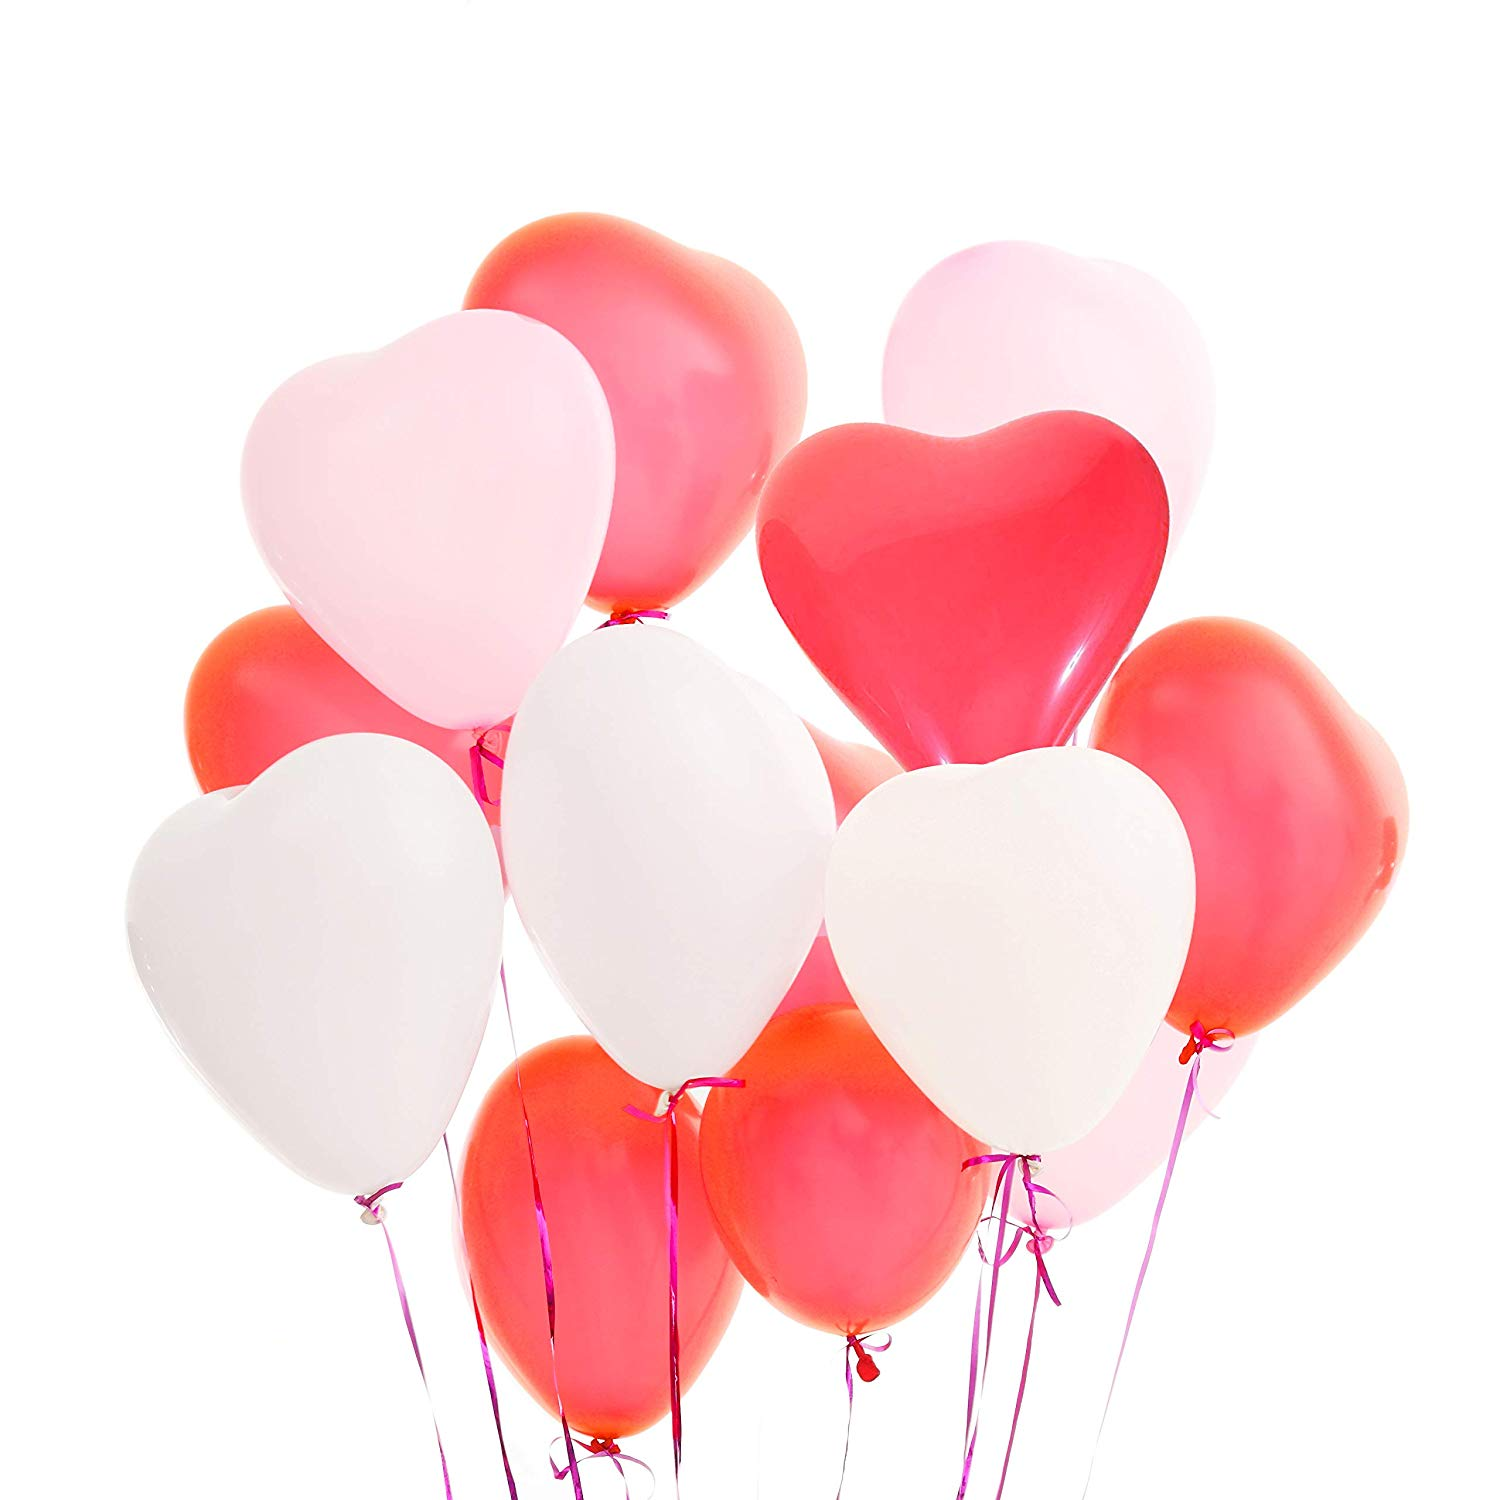 Valentines Day Balloons 50 Packs Heart Balloons 12 inch Latex Balloons for Wedding Decoration Birthday Decoration or Anniversary Decoration - Pink/White/Red LAttLiv